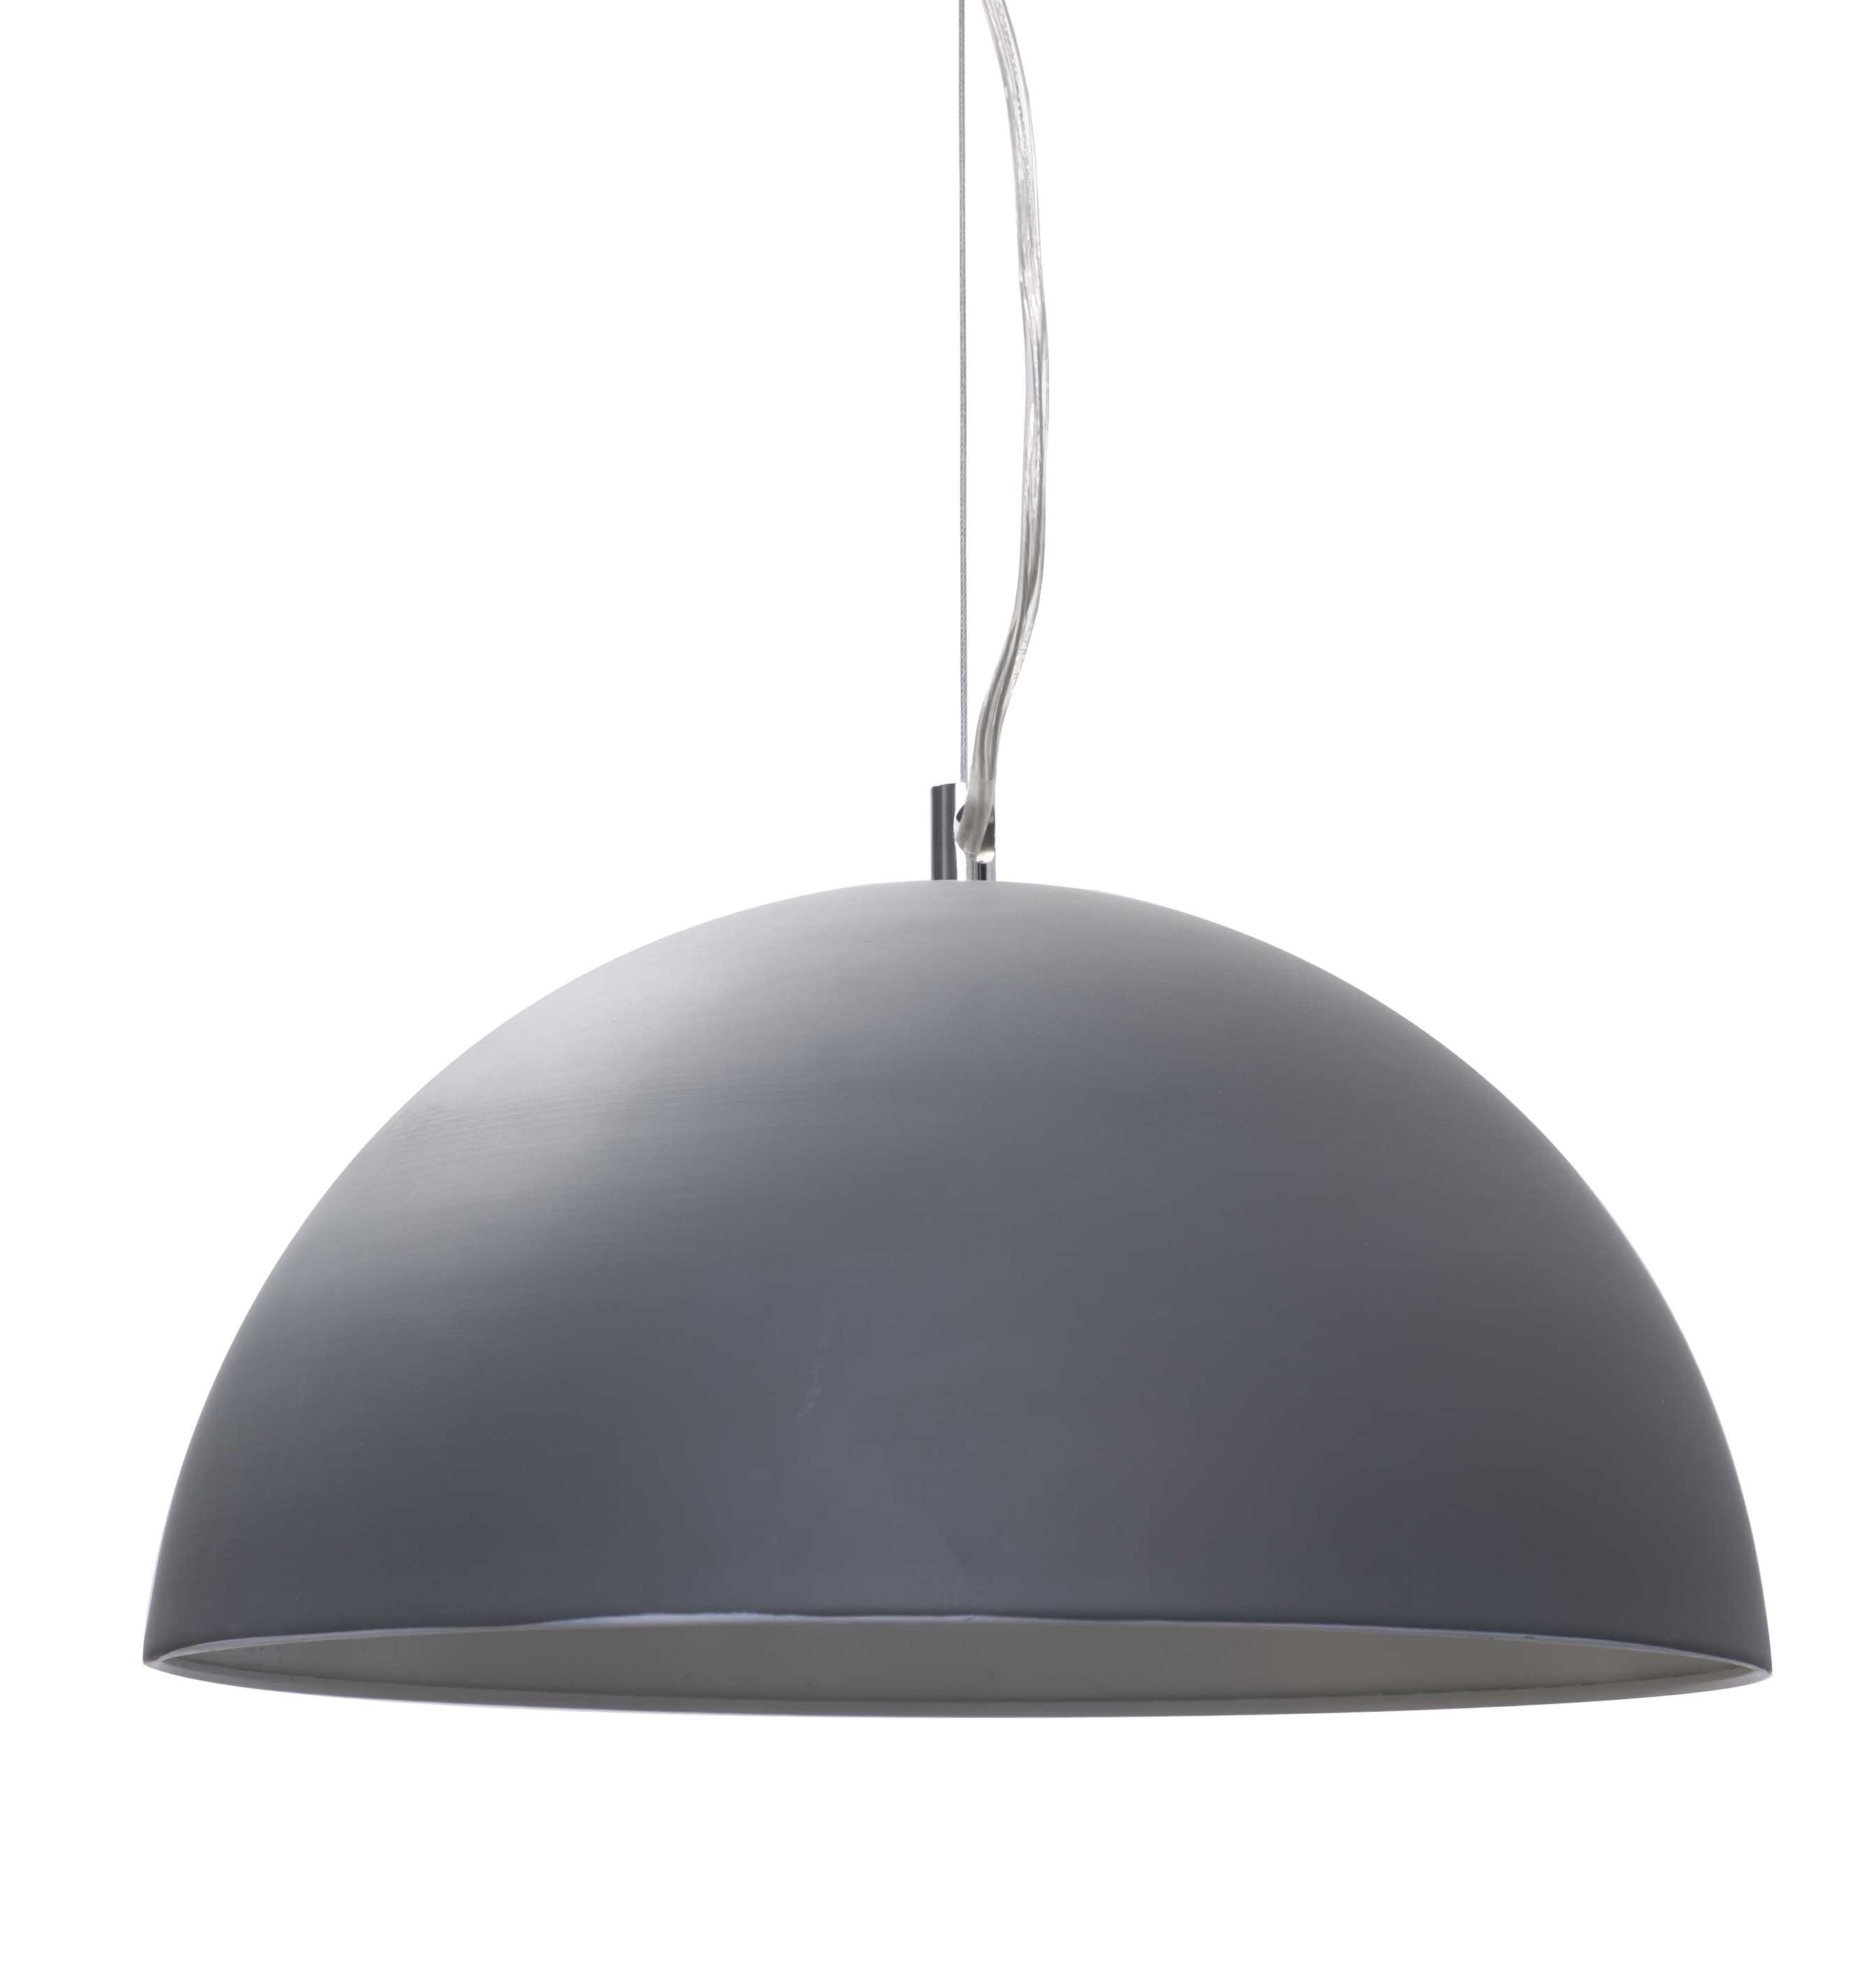 solo on concrete basic lamp shop twelve pendant magnetic modular